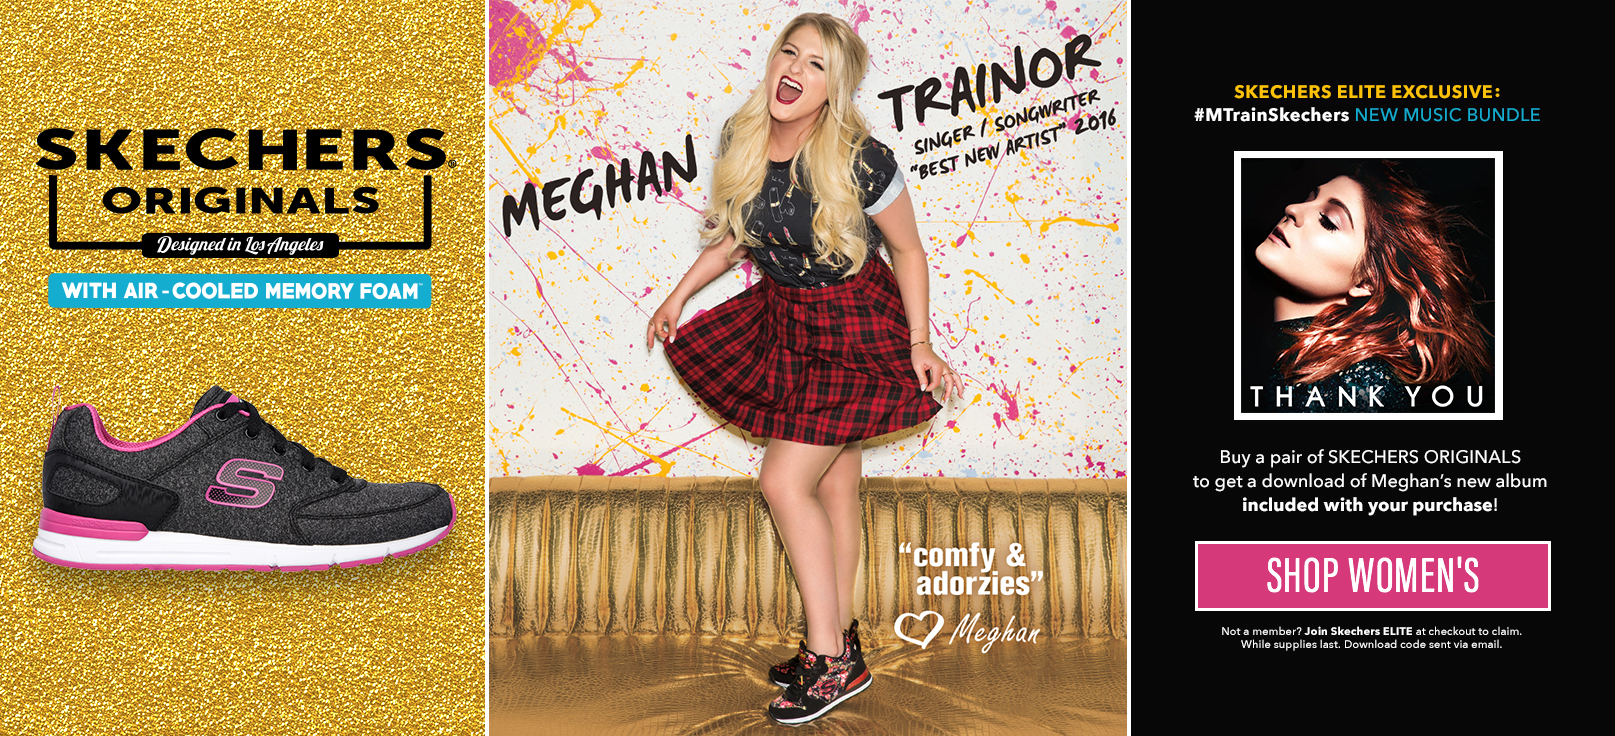 Shop on Skechers.com for women including Memory Foam sneakers, sandals, women's casual shoes, women's athletic sport shoes, and Skechers Originals as worn by Meghan Trainor